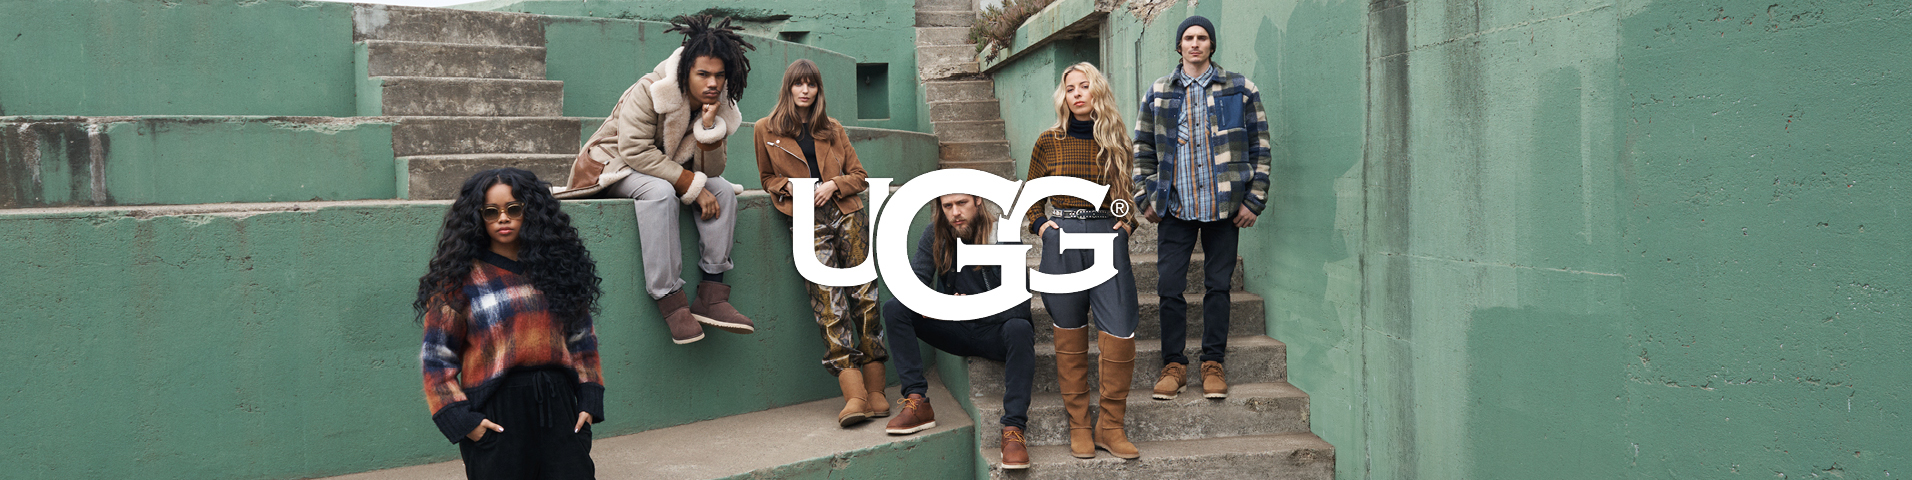 difference ugg homme femme